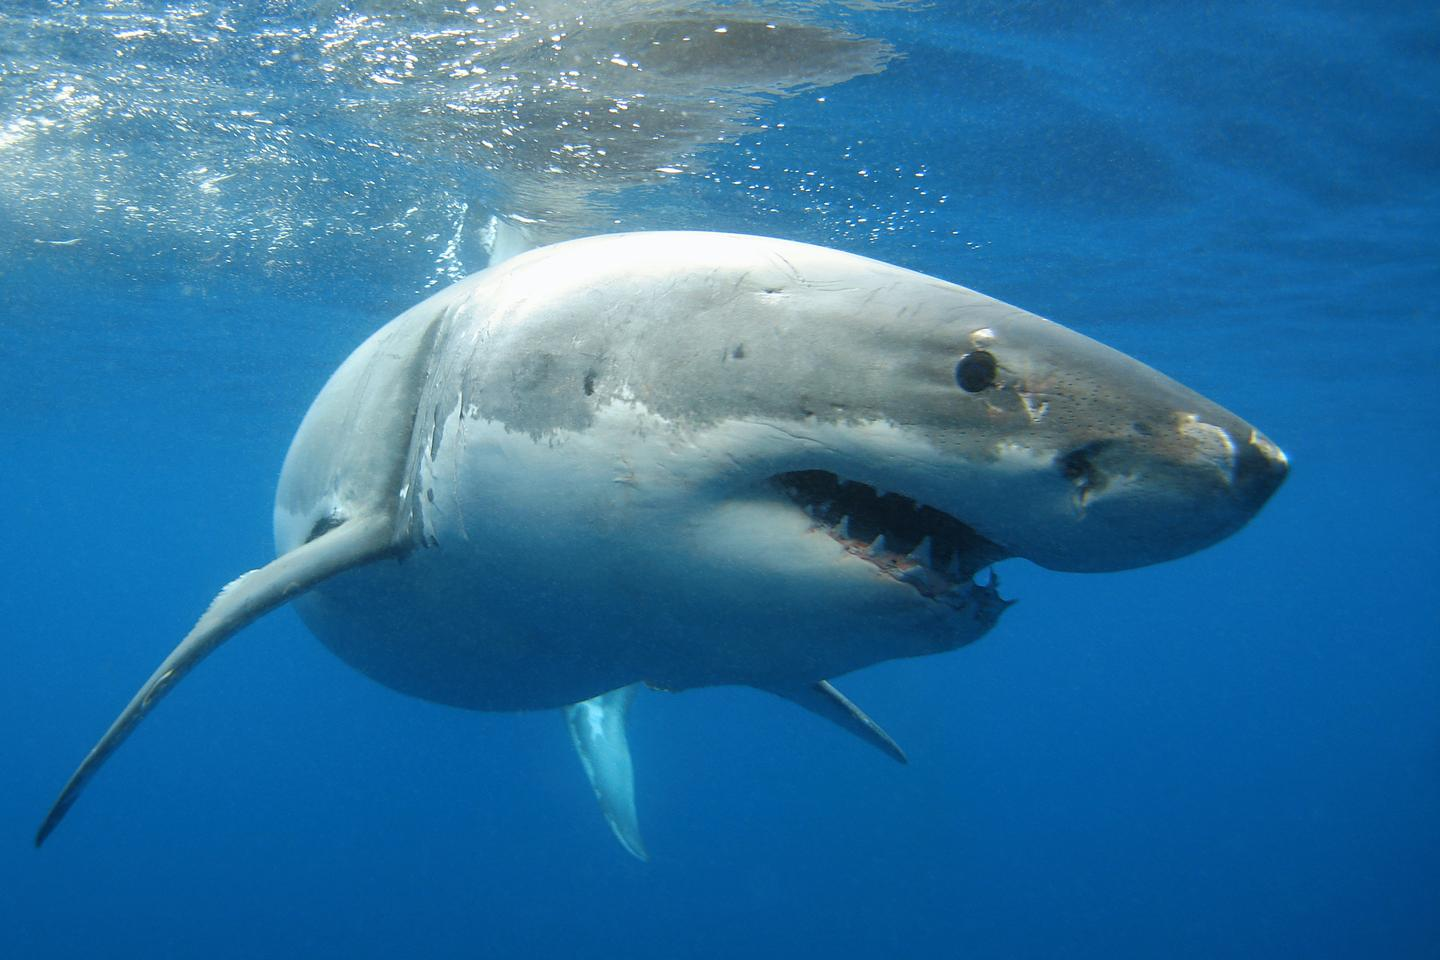 Great white sharks may get big when they grow up, but the babies are still relatively small and in need of protection from predators